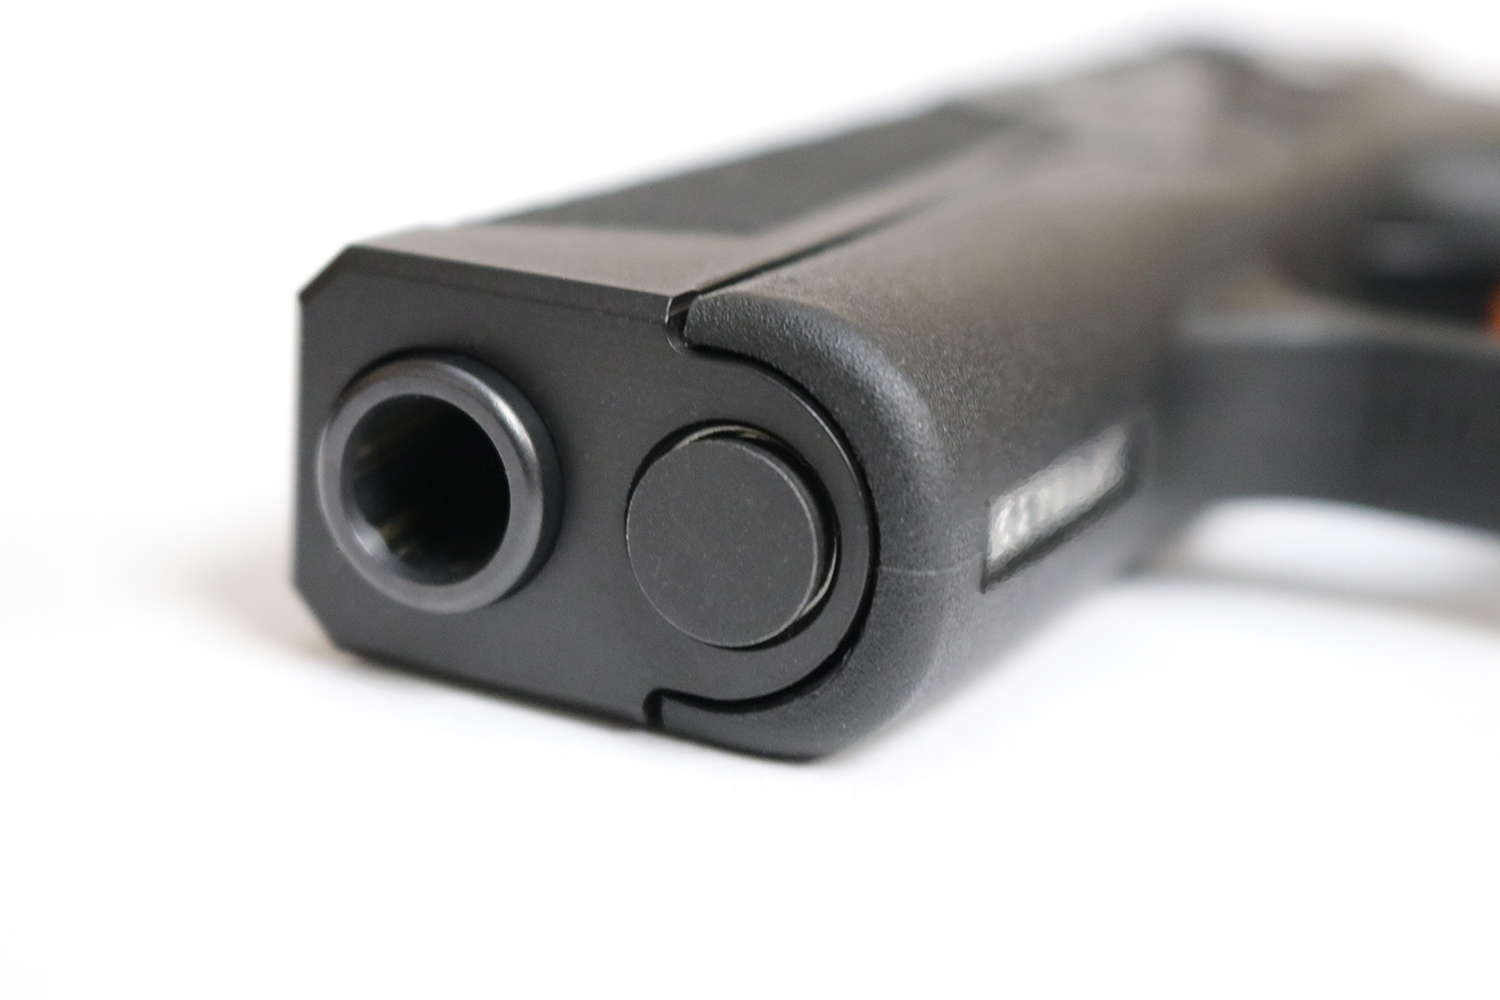 Guide Rod for the Glock 48